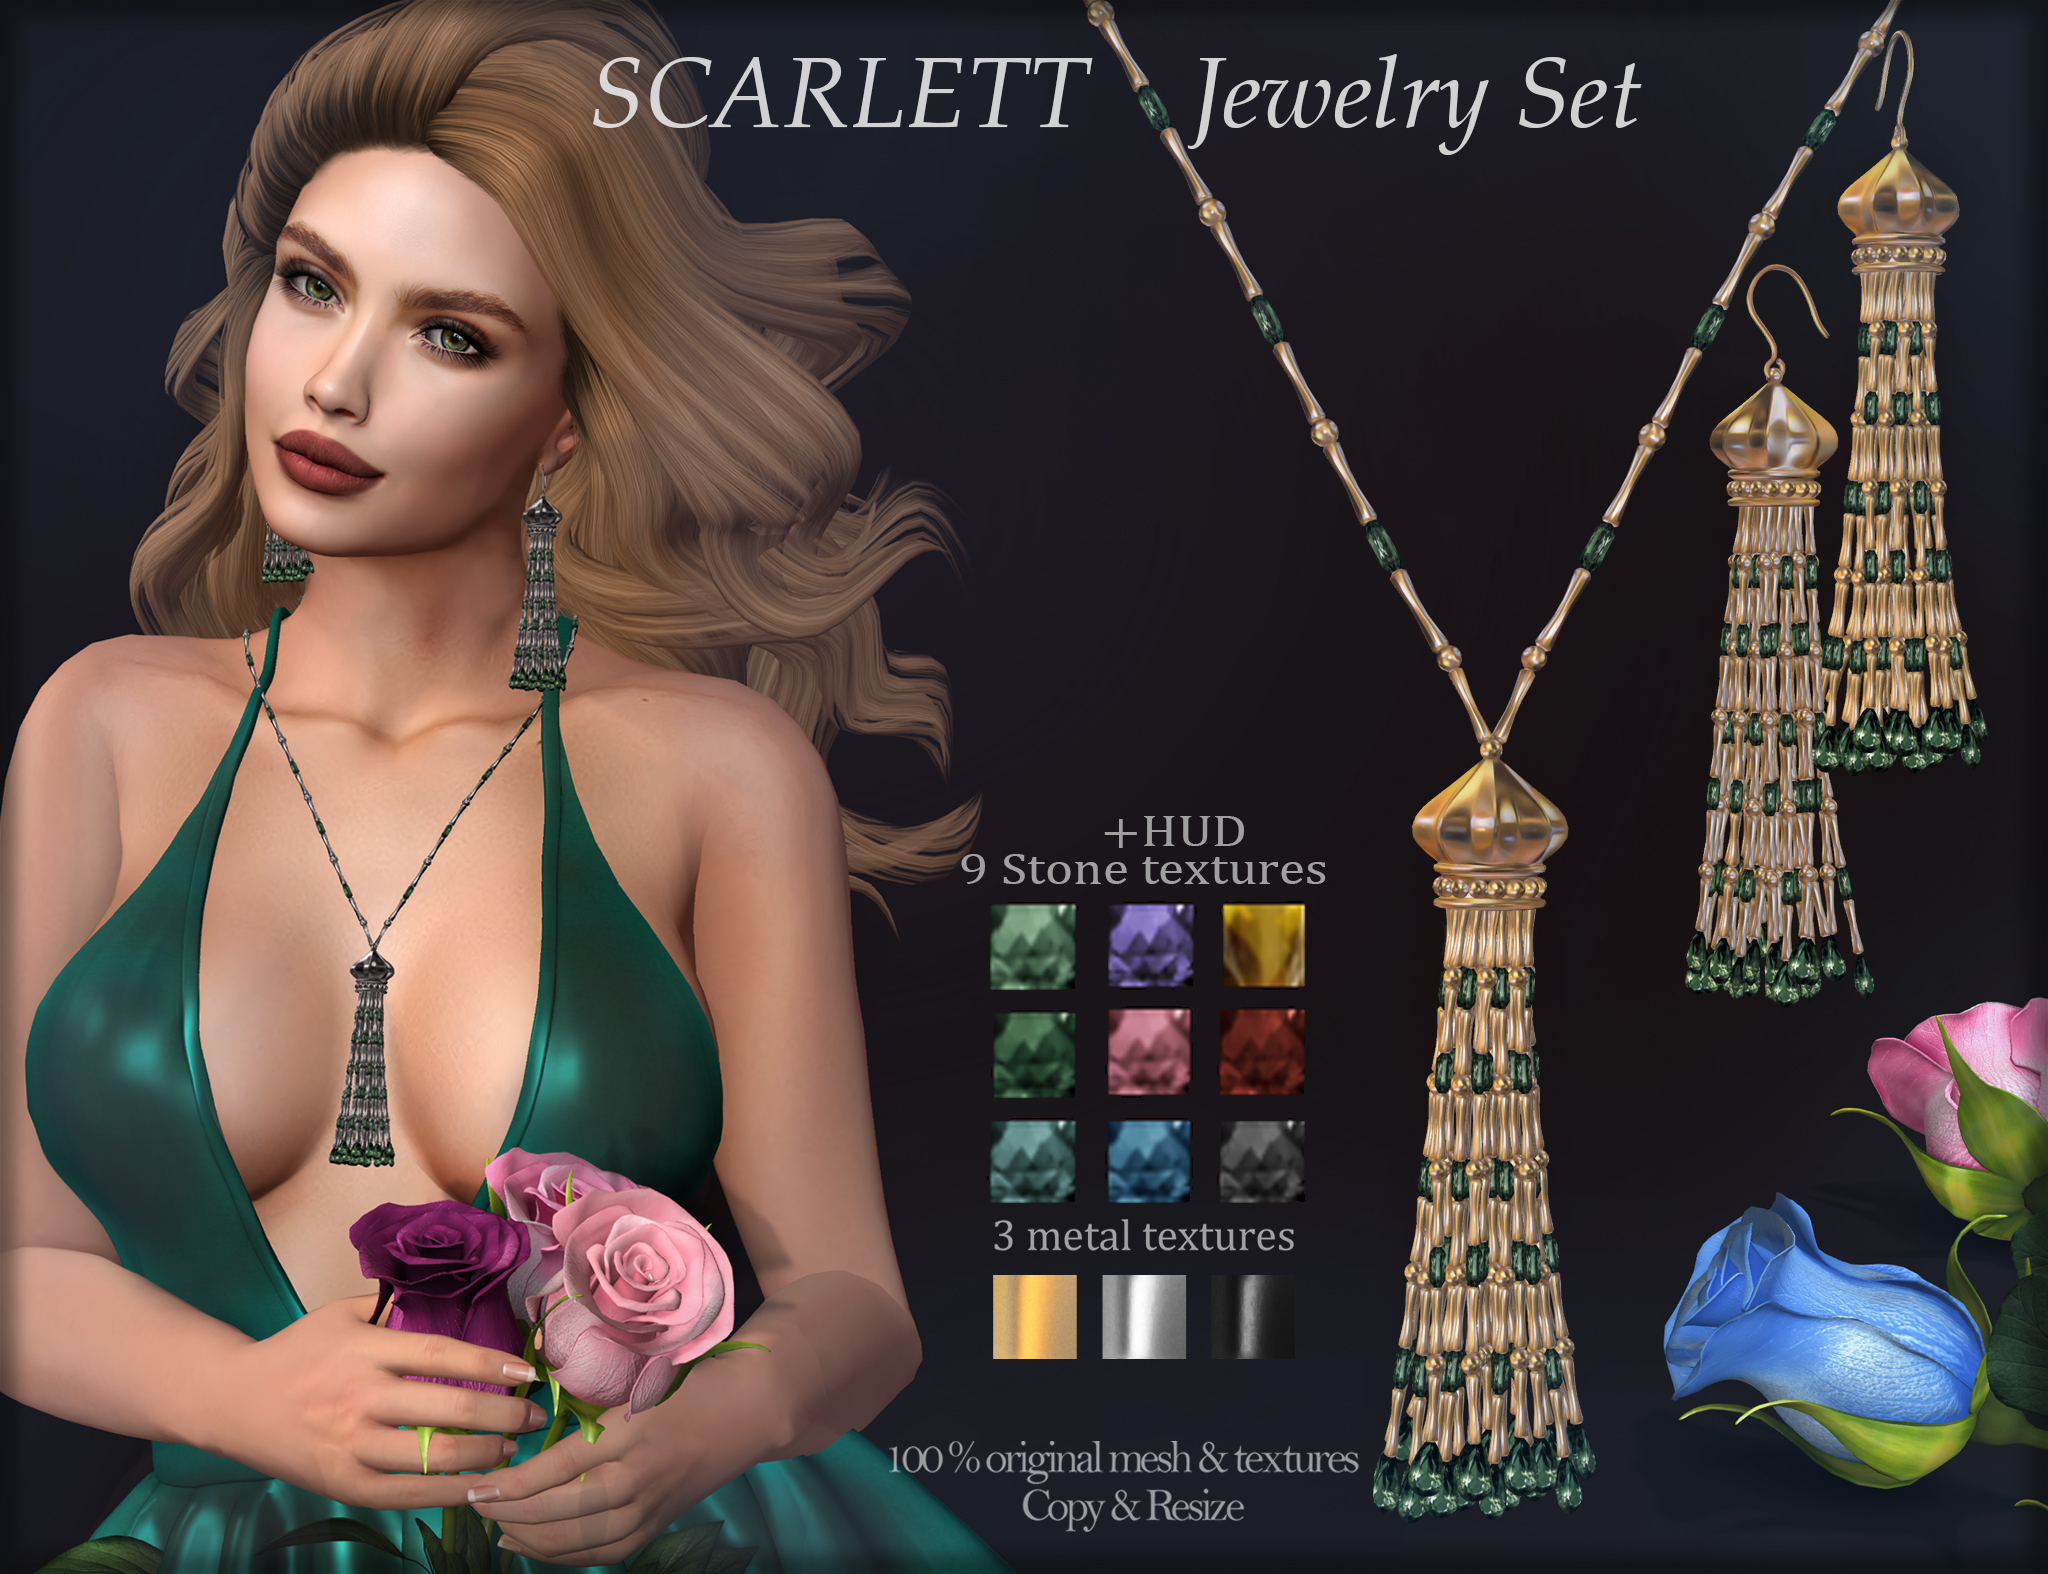 Scarlett_Jewelry Set